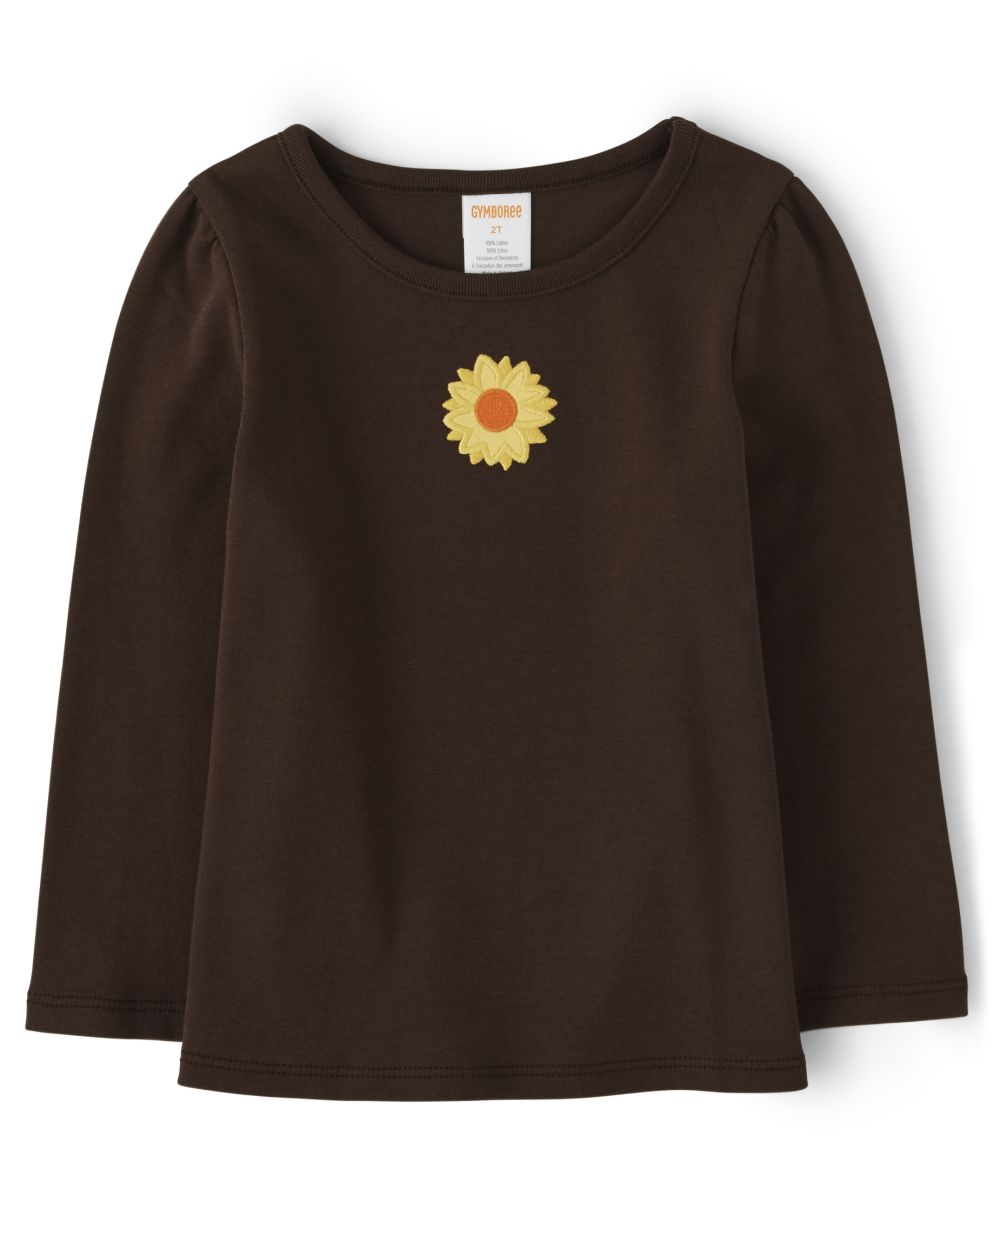 Girls Embroidered Sunflower Top - Every Day Play